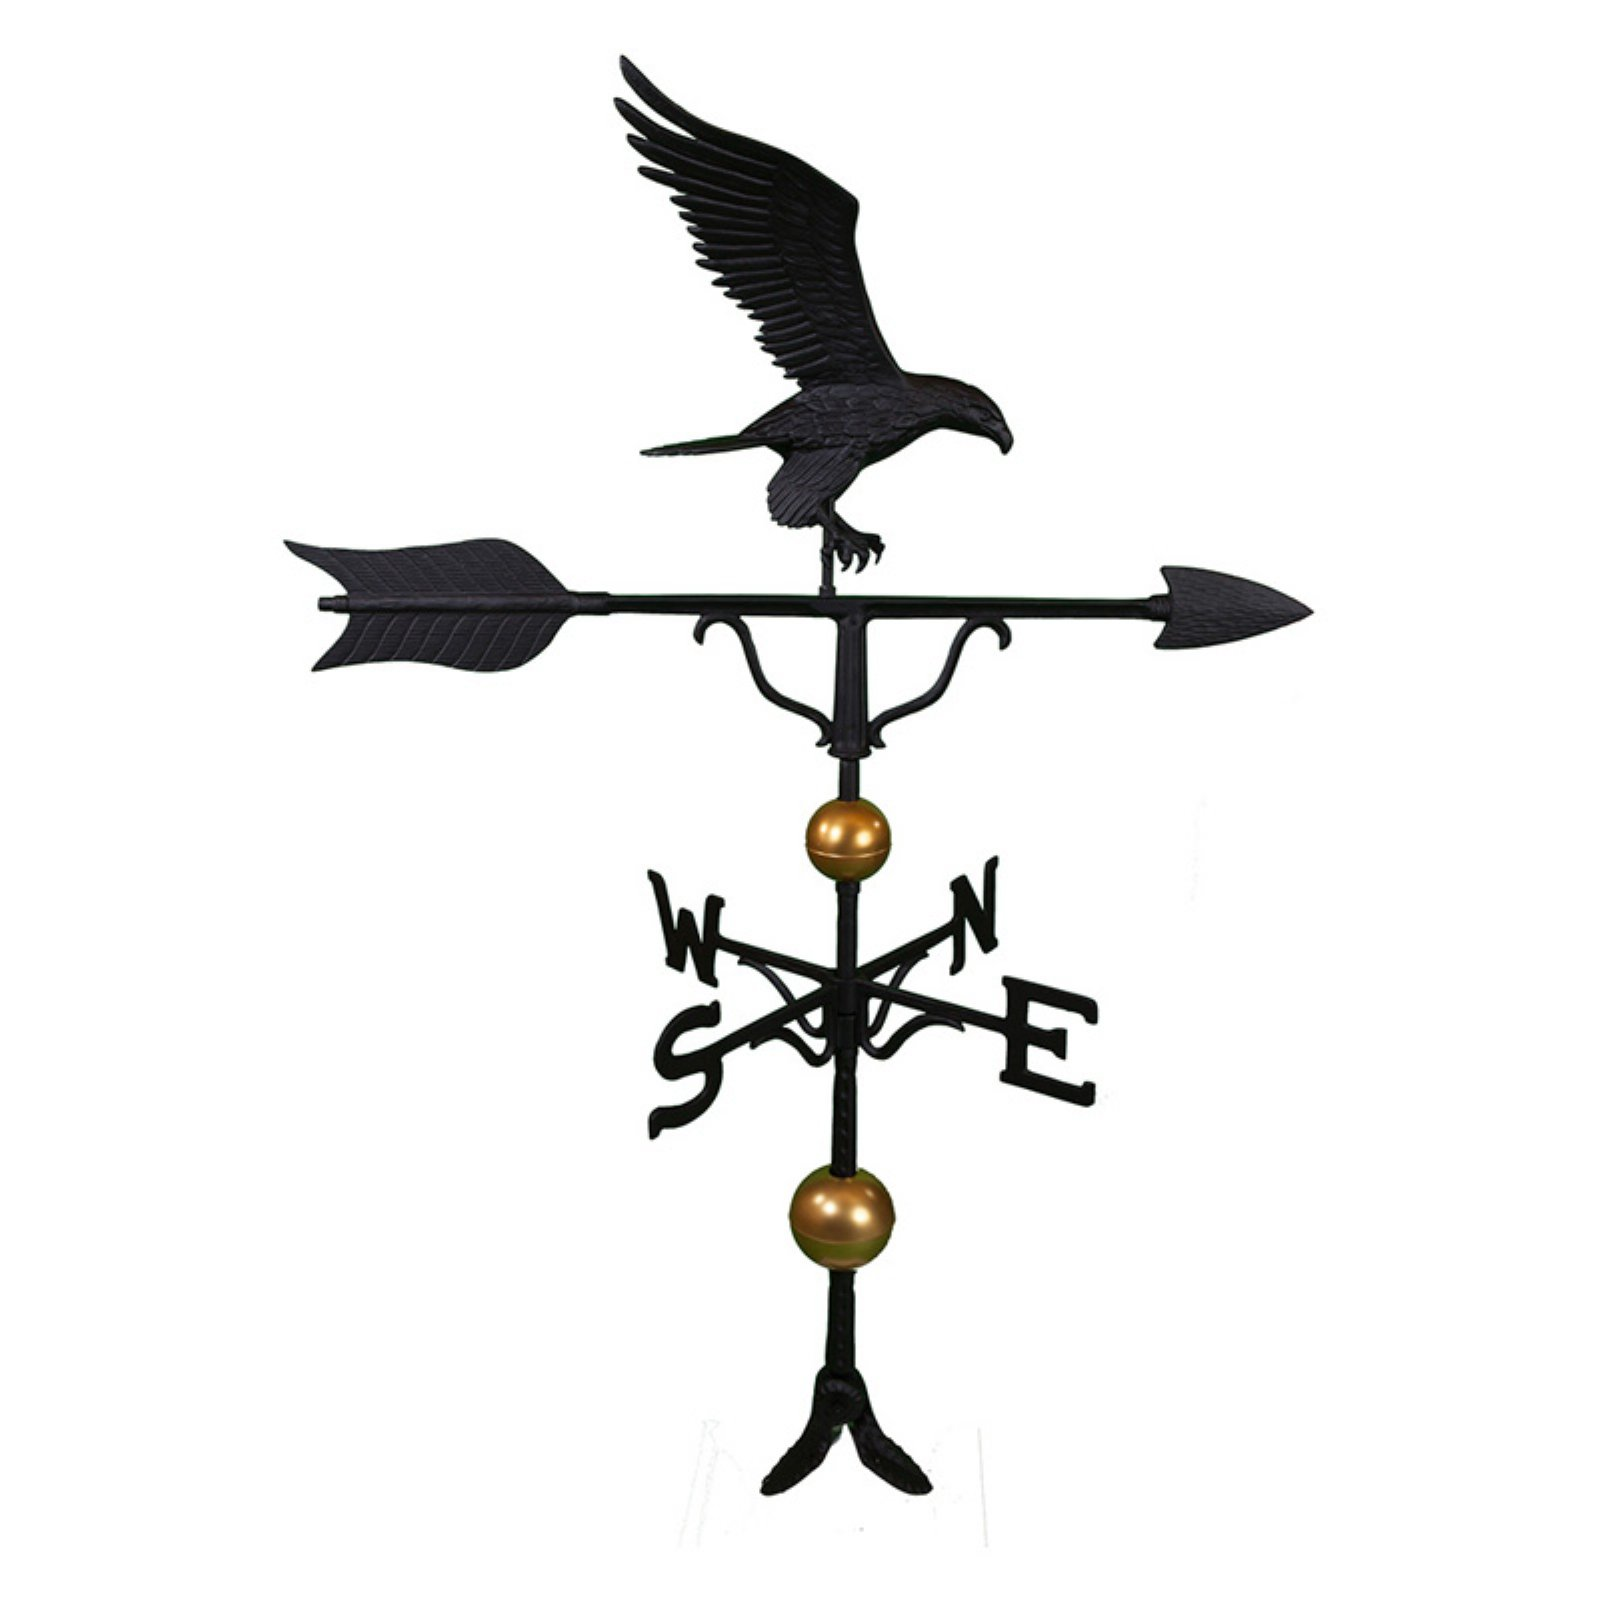 Deluxe Black Full Bodied Eagle Weathervane - 52 in.